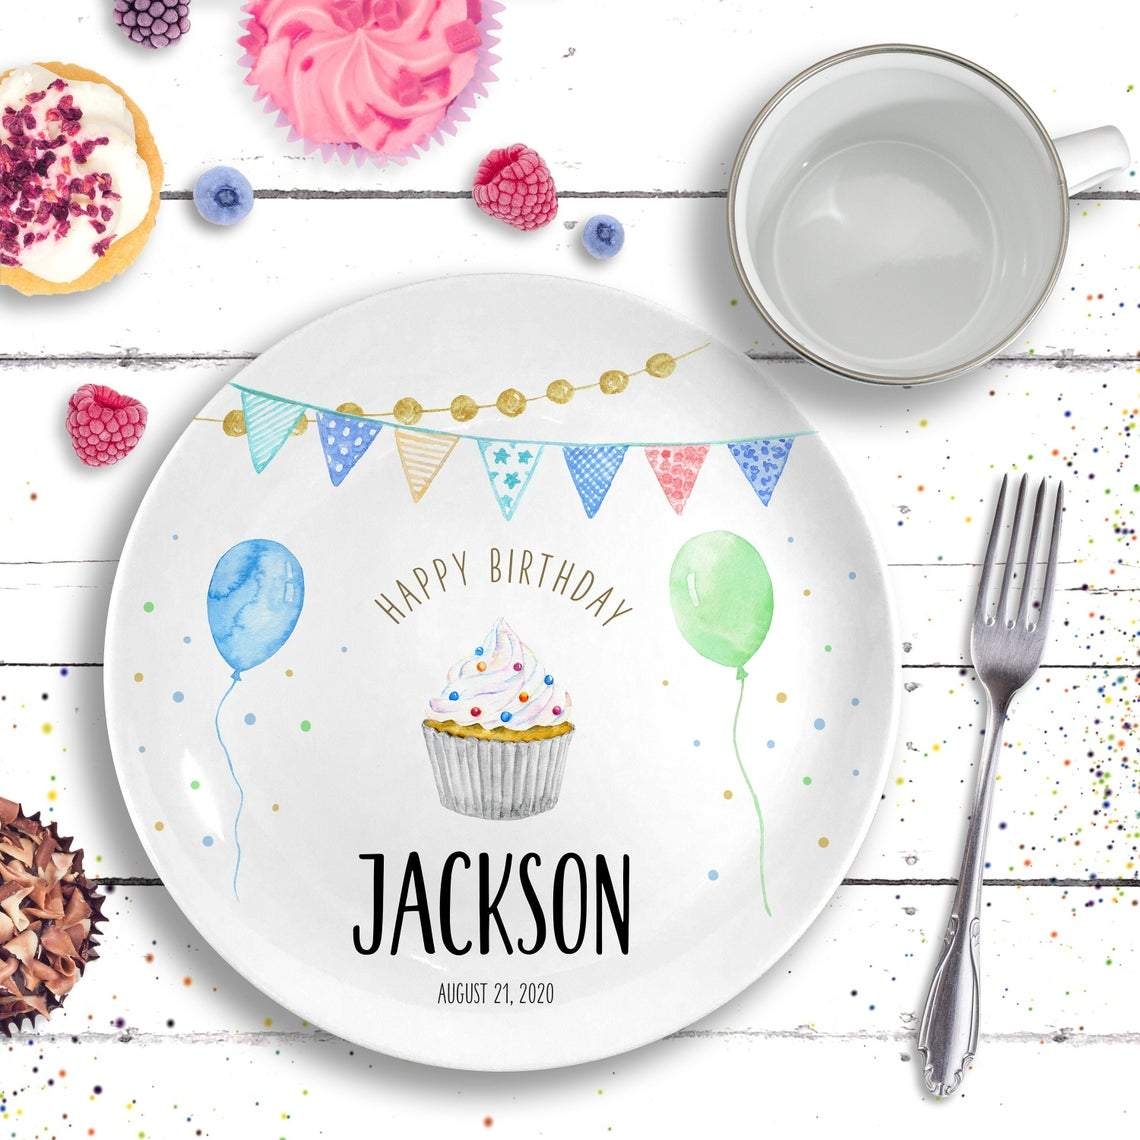 Birthday Plate Ceramic - Personalized Birthday Gift-Gifts-Plate-Grey Cupcake-Boy-Jack and Jill Boutique